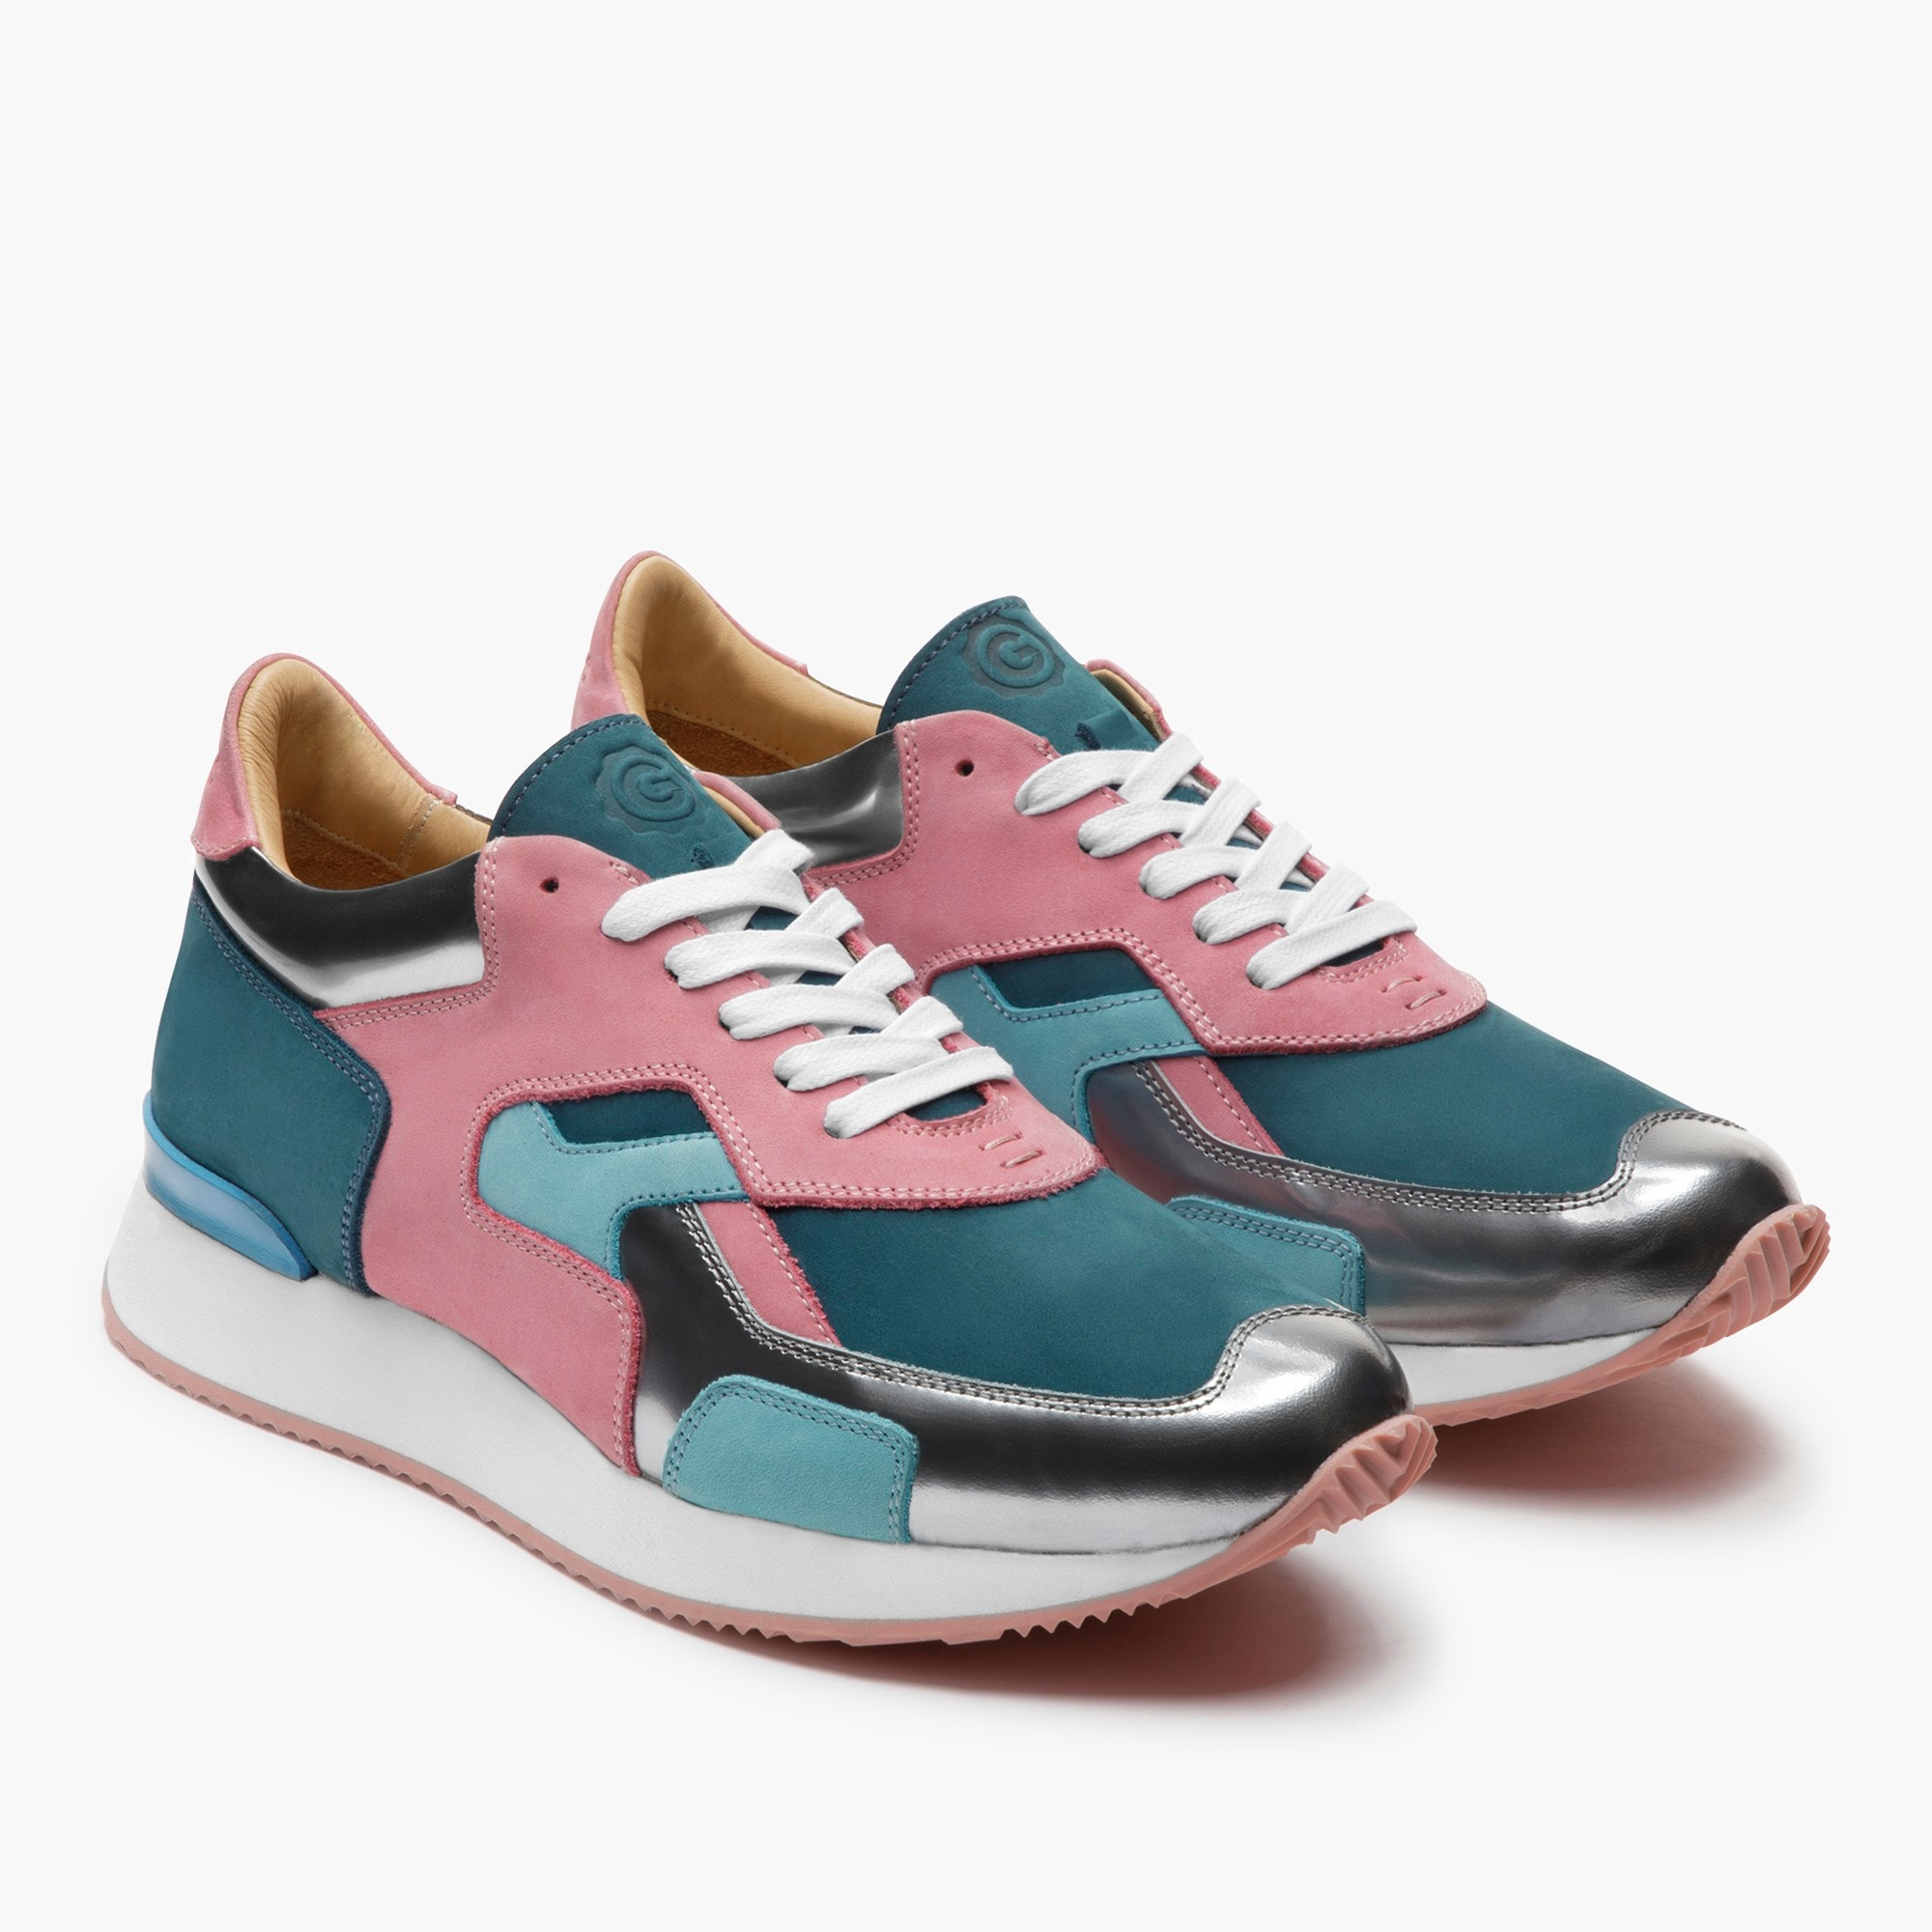 womens GREATS® Pronto sneakers in blush